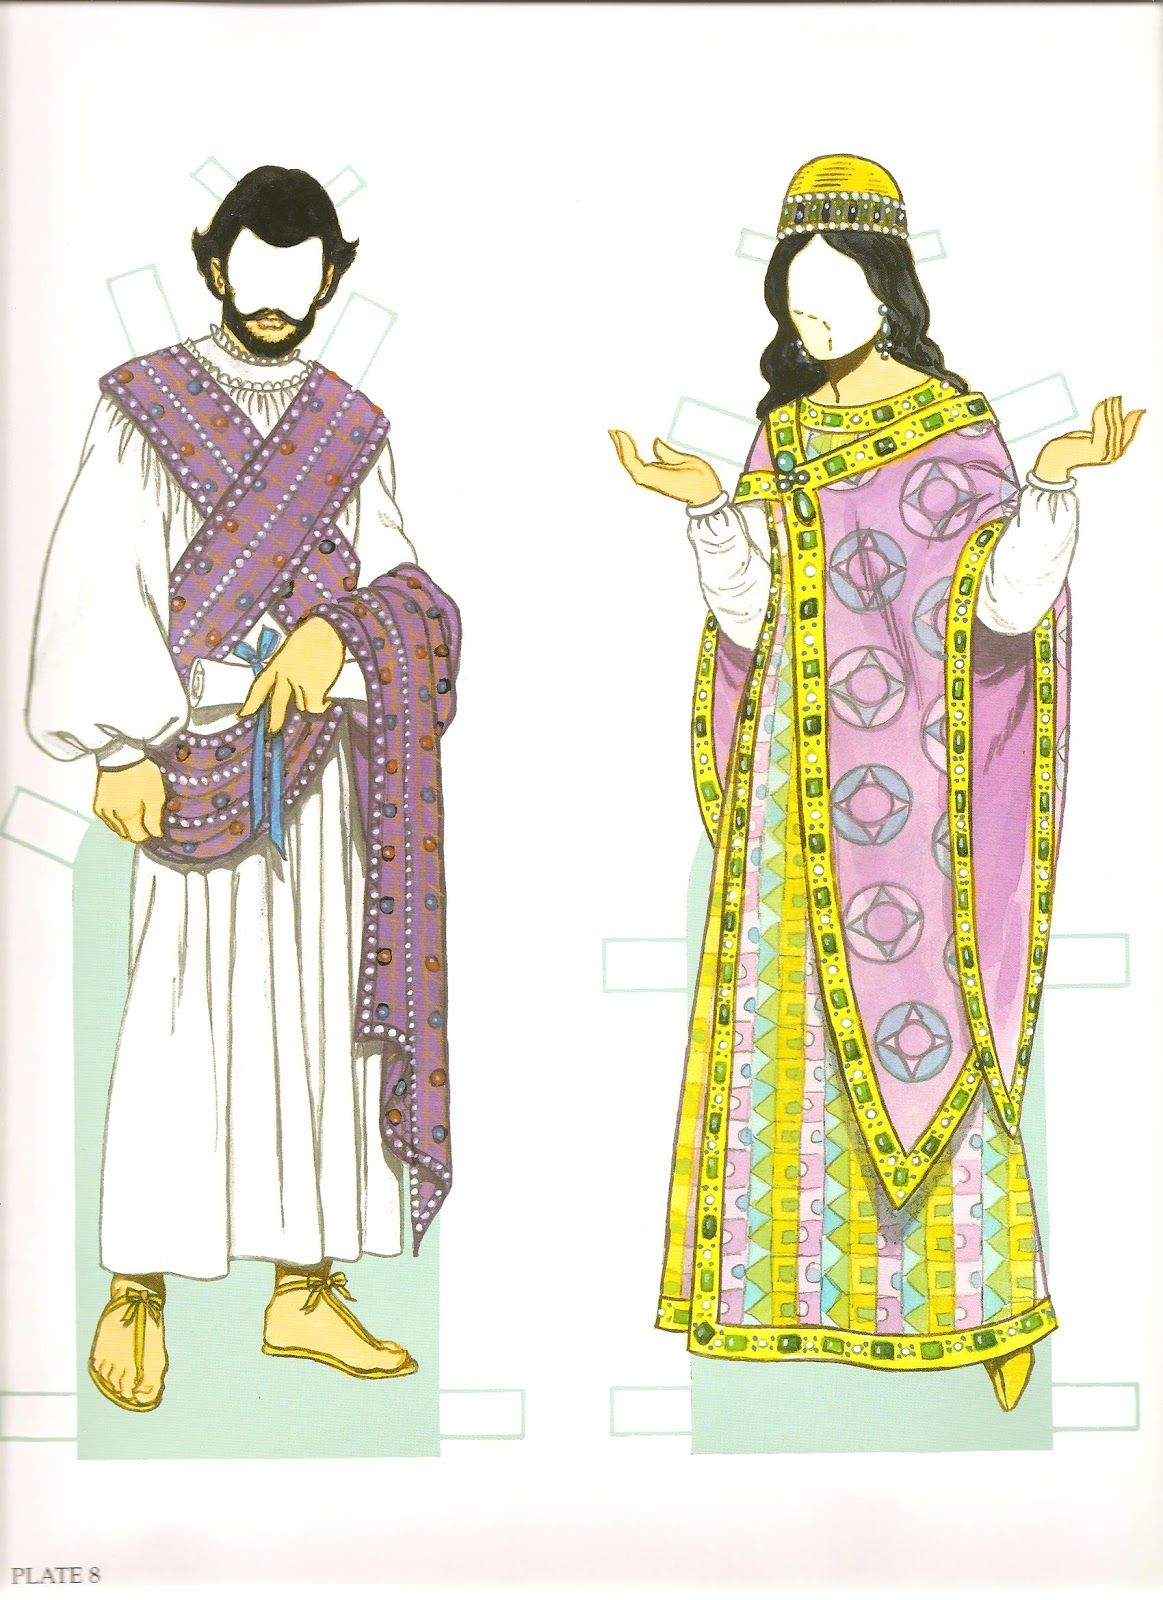 Tom tierney colonial fashions paper dolls - Byzantine Costumes Paper Dolls By Tom Tierney Dover Publications Inc 2002